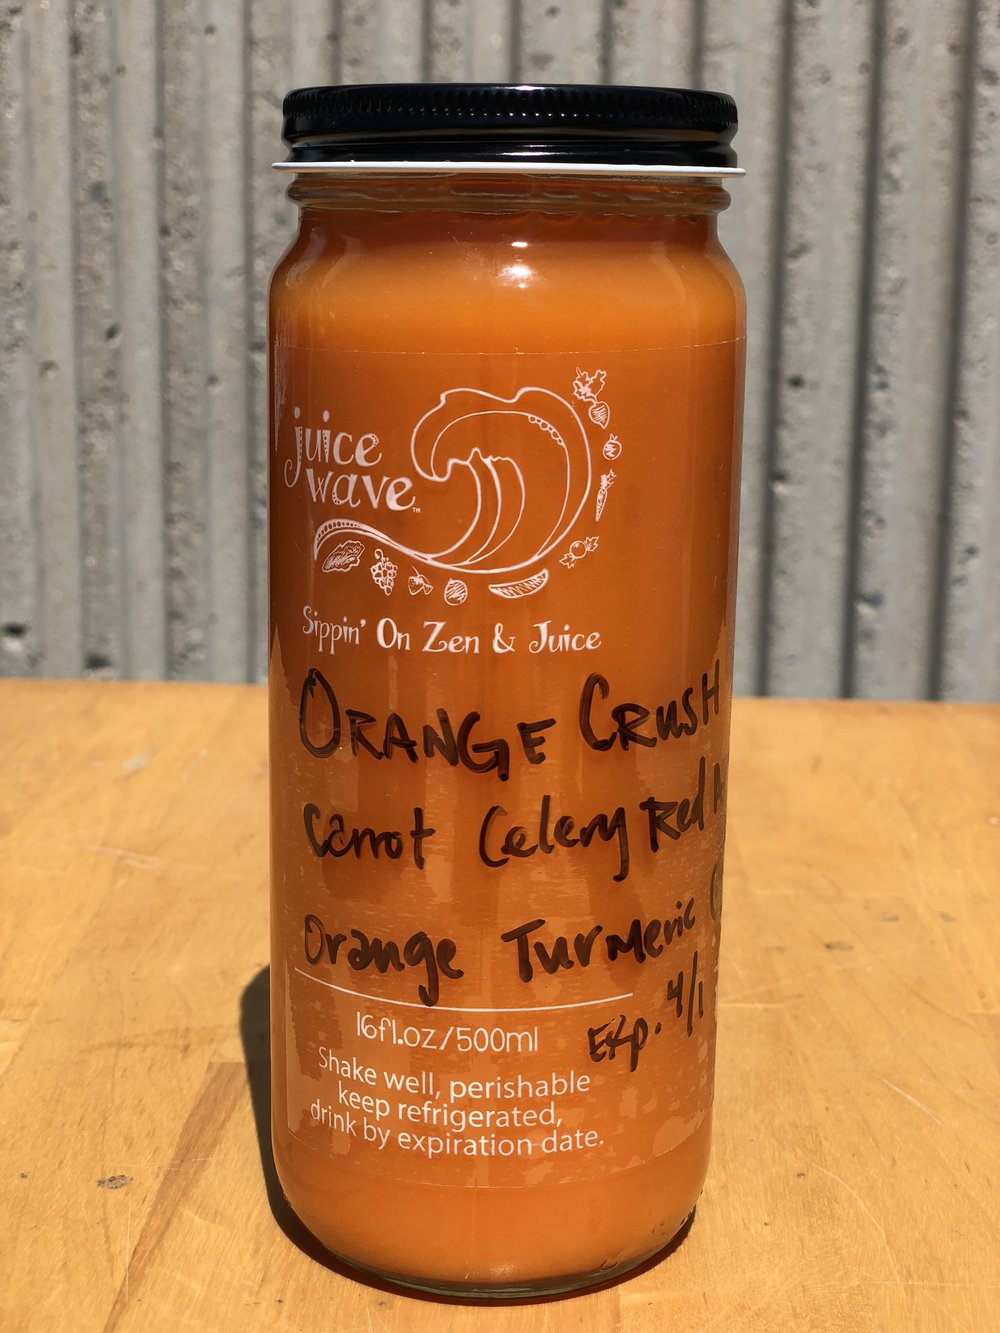 ORANGE CRUSH: Carrot, Celery, Red Apple, Ginger, Turmeric, Orange